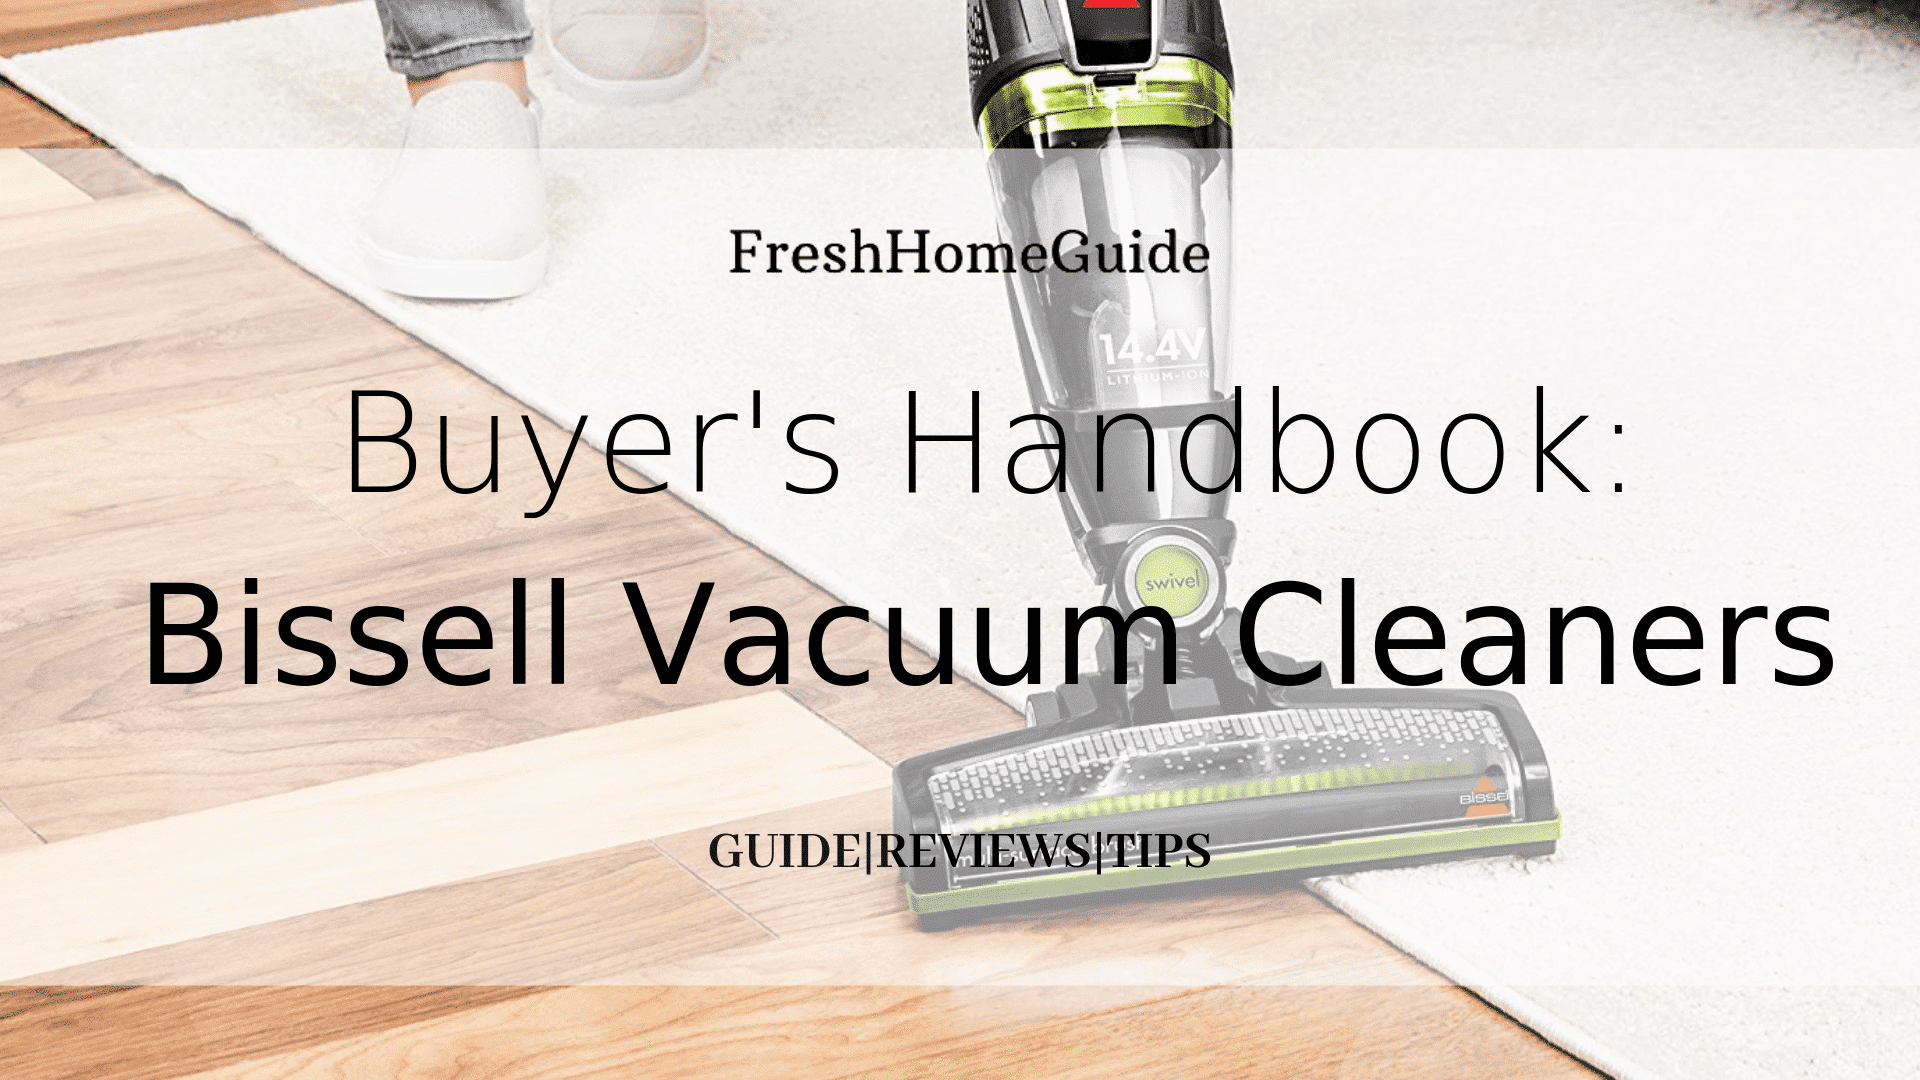 Fresh Home Guide Ultimate Bissell Vacuum Cleaner Buyer's Handbook